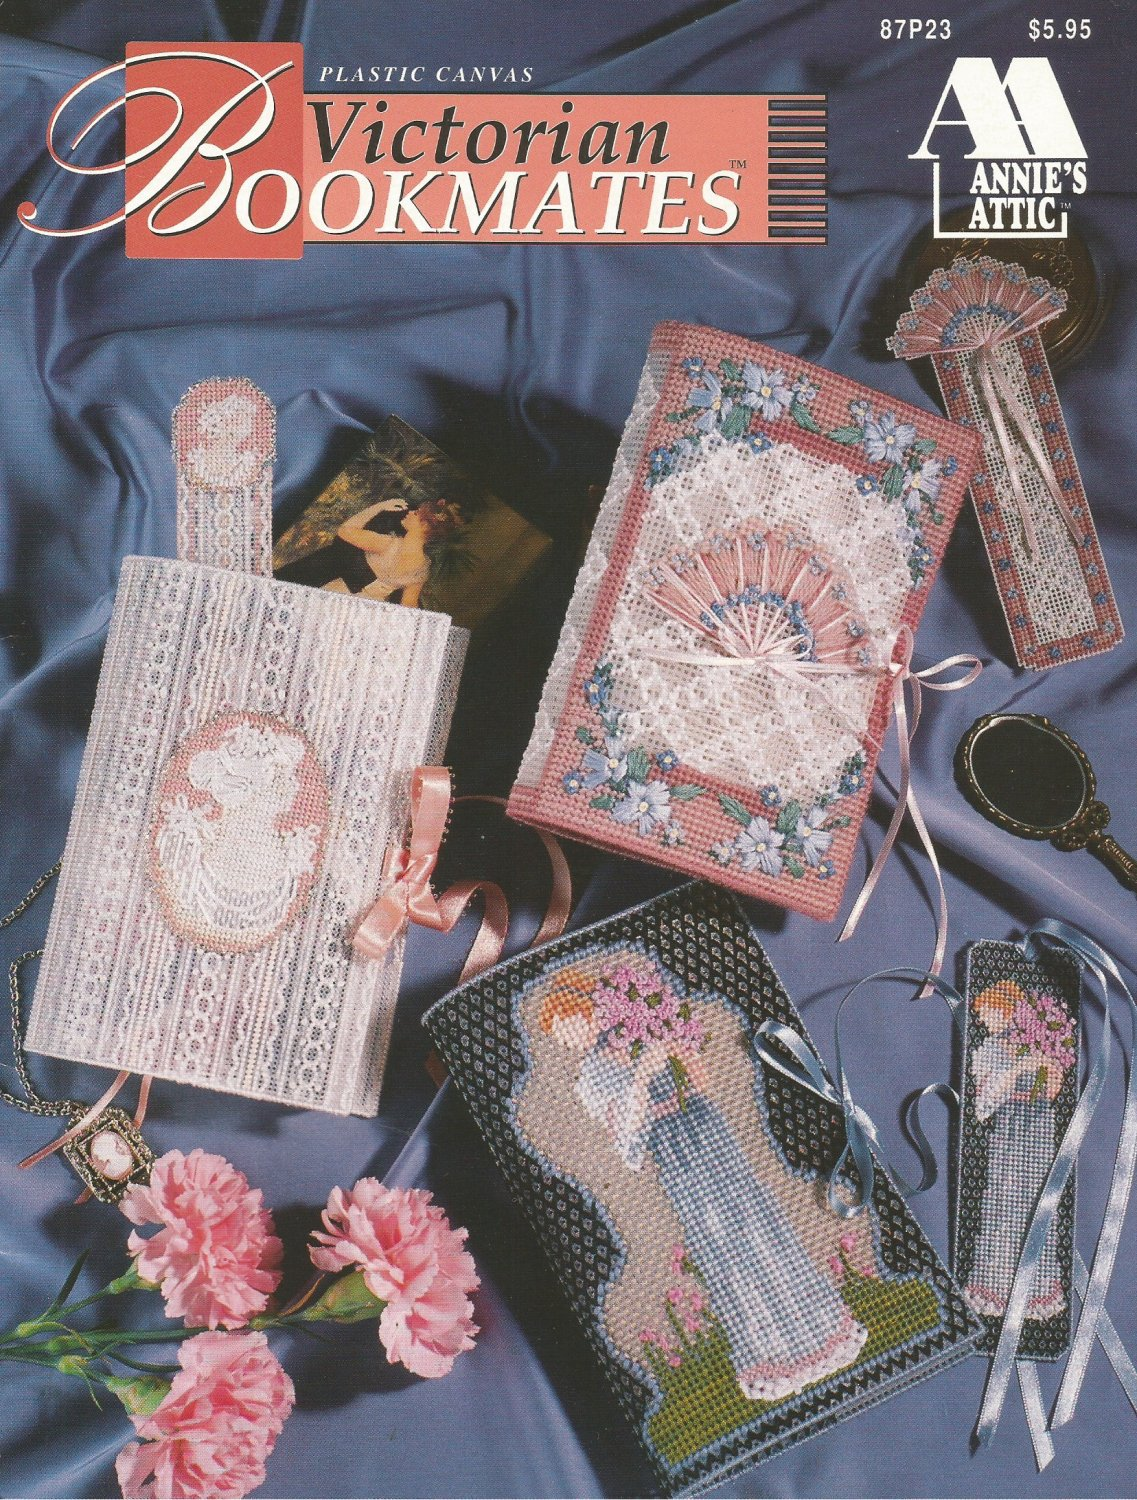 Plastic Canvas Book Cover Patterns ~ Victorian bookmates in plastic canvas pattern by annie s